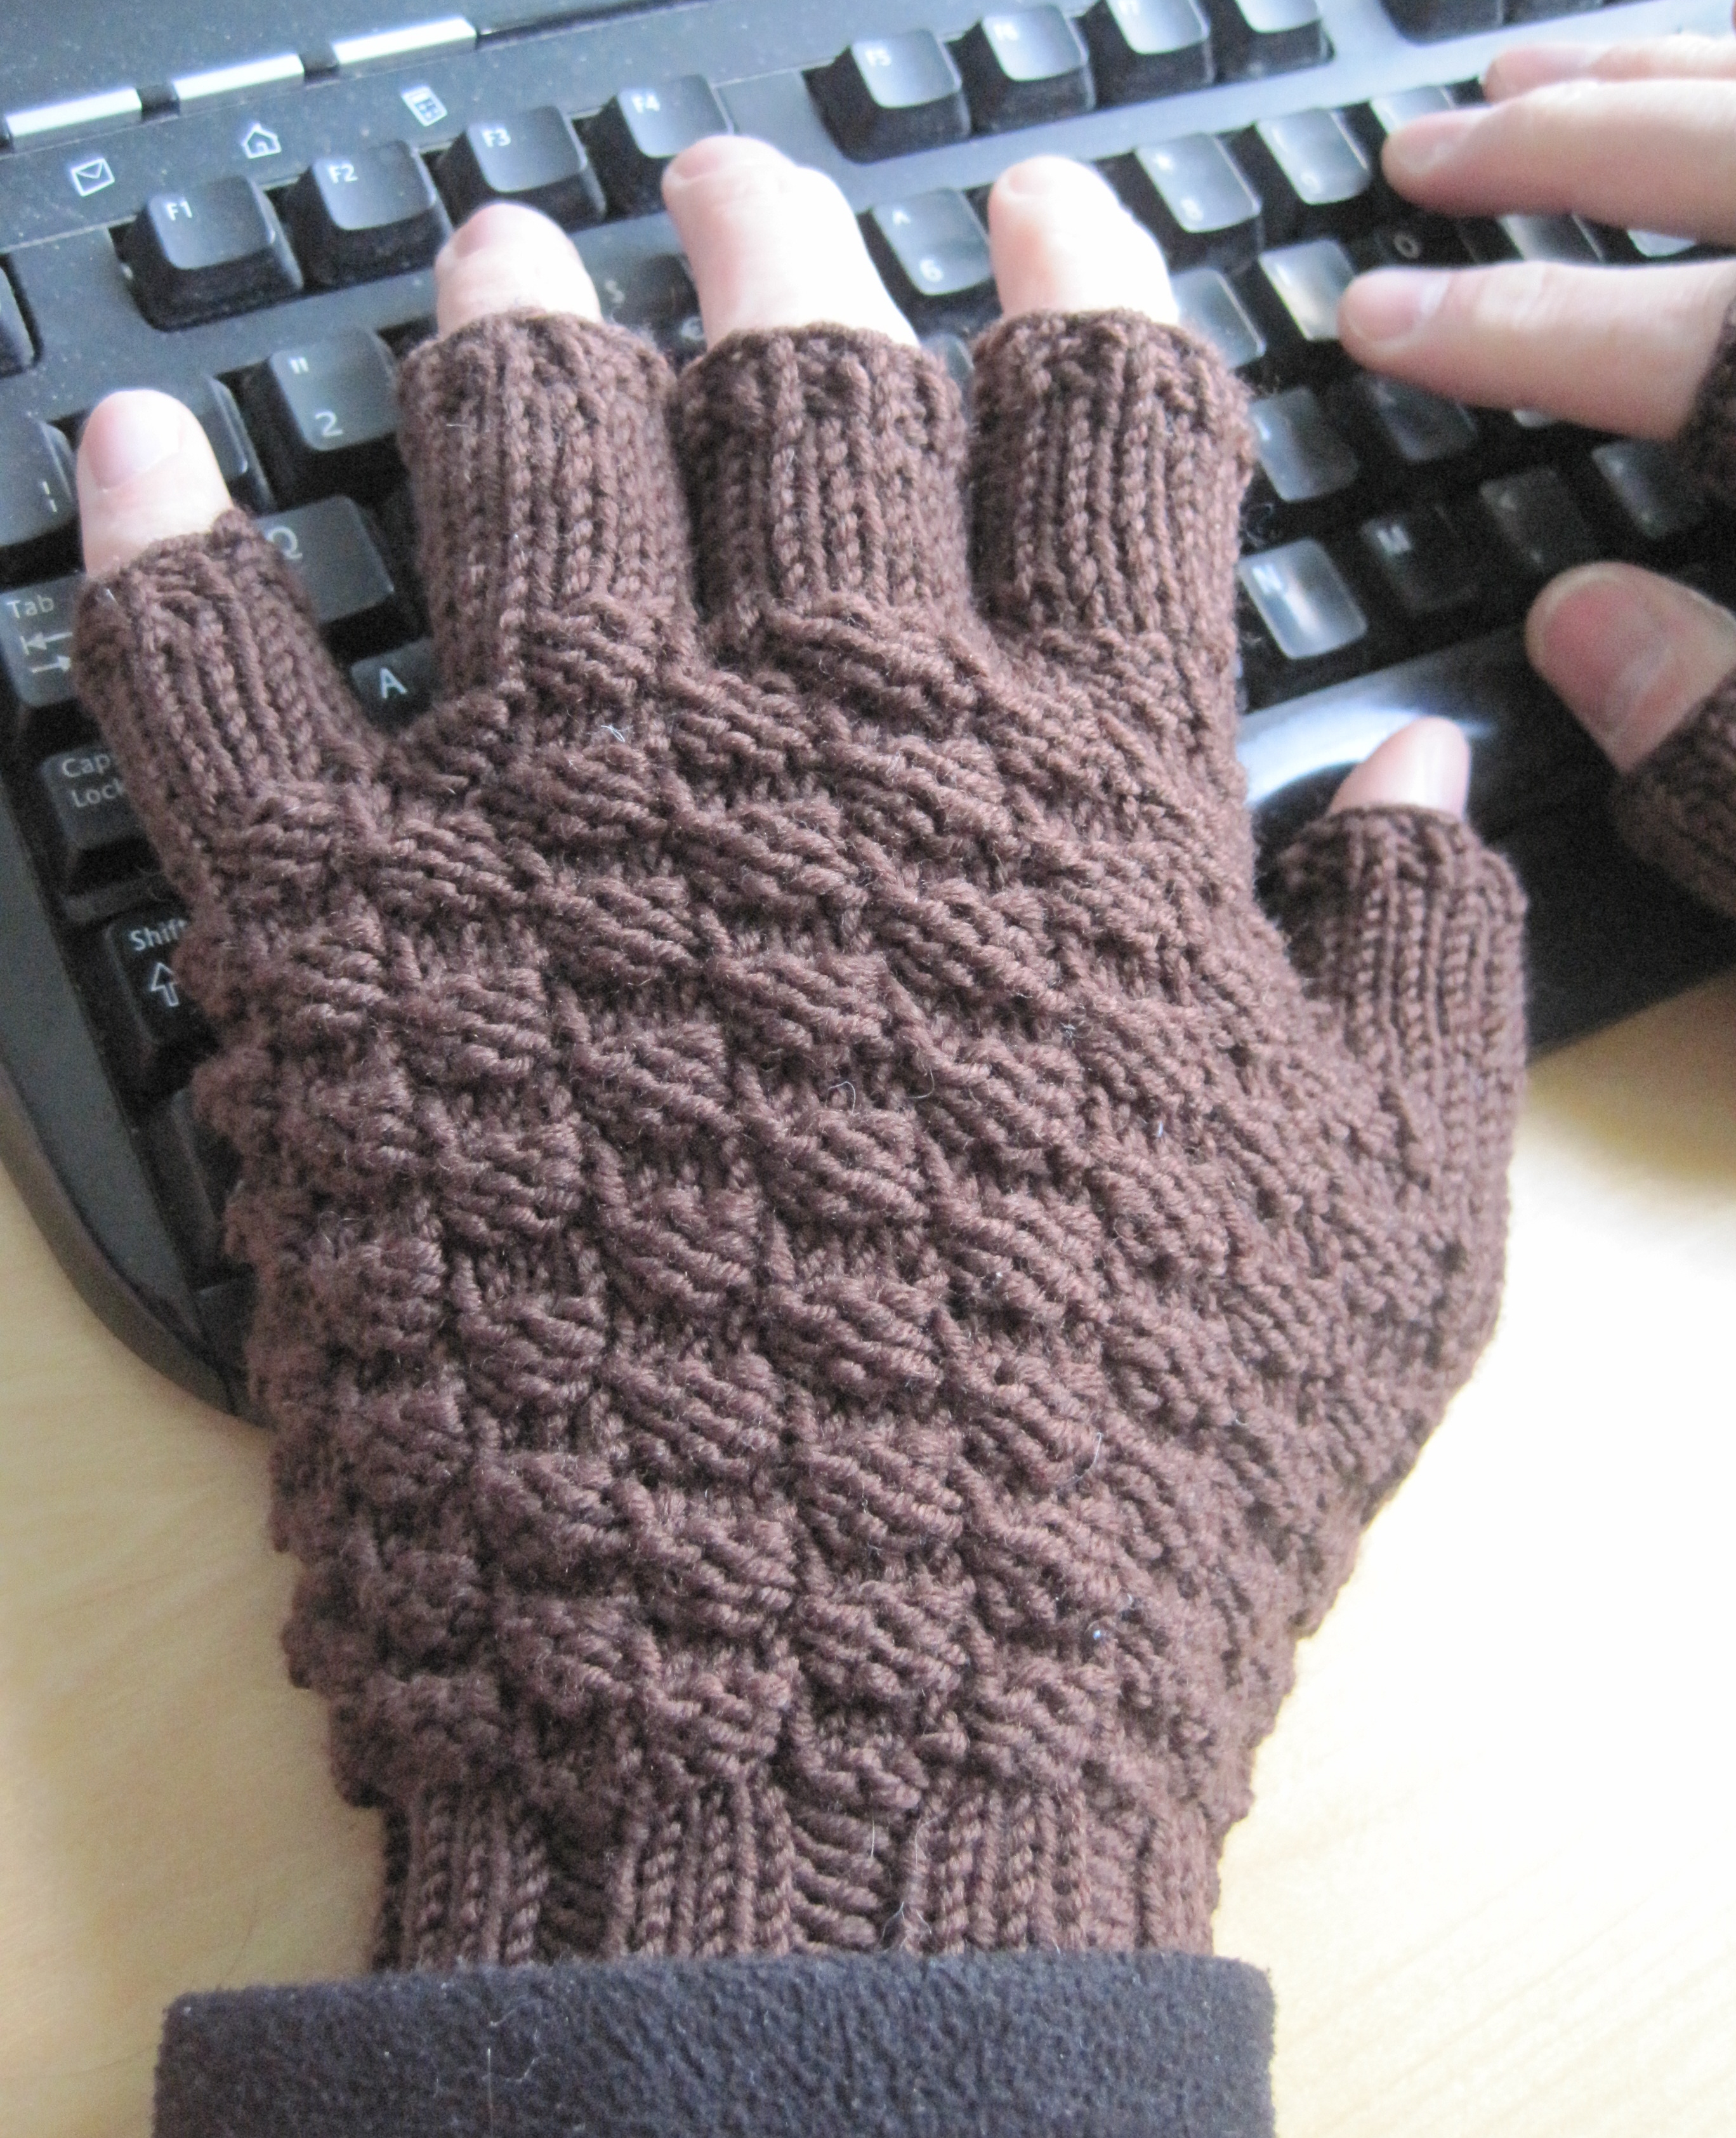 Meeting a need: manly fingerless gloves - The penguin with the ...